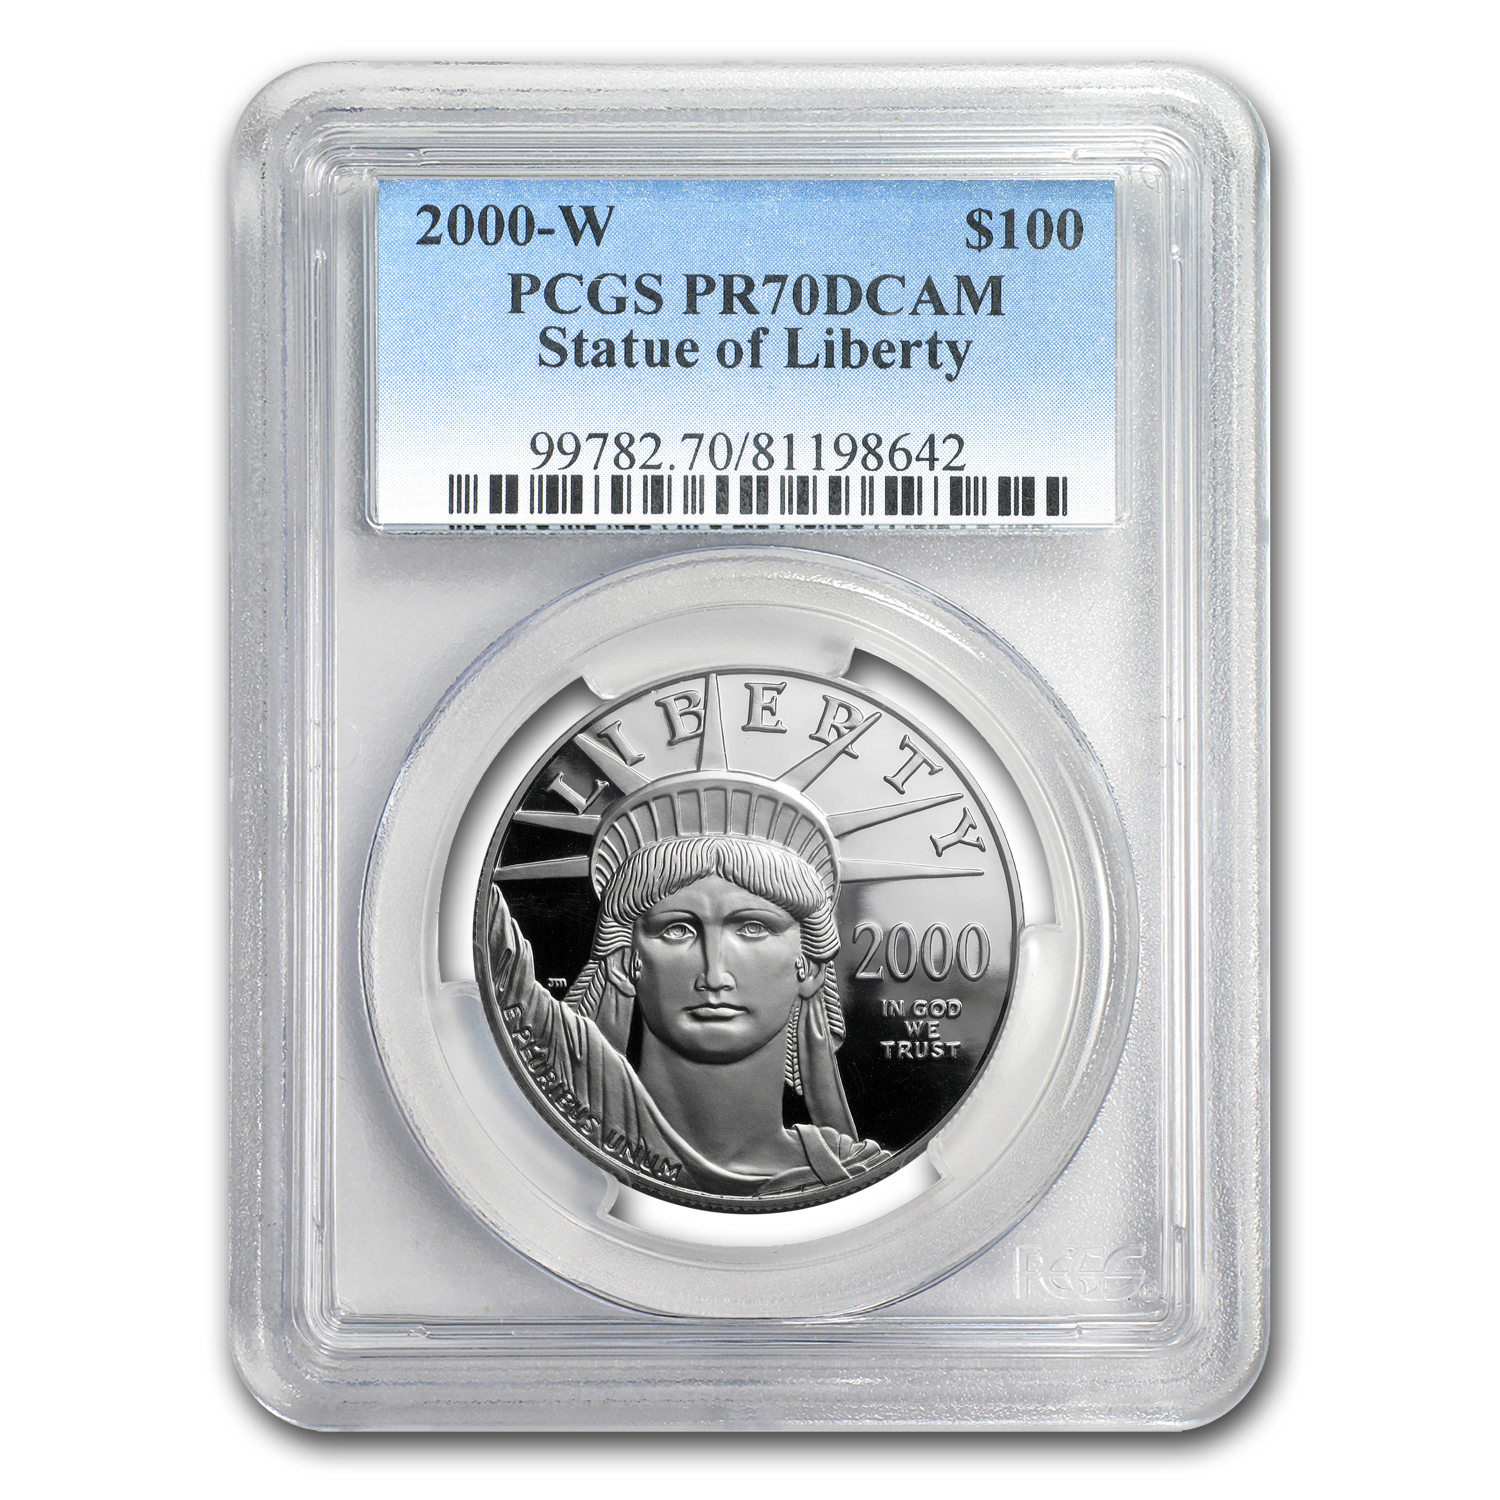 2000-W 1 oz Proof Platinum American Eagle PR-70 PCGS